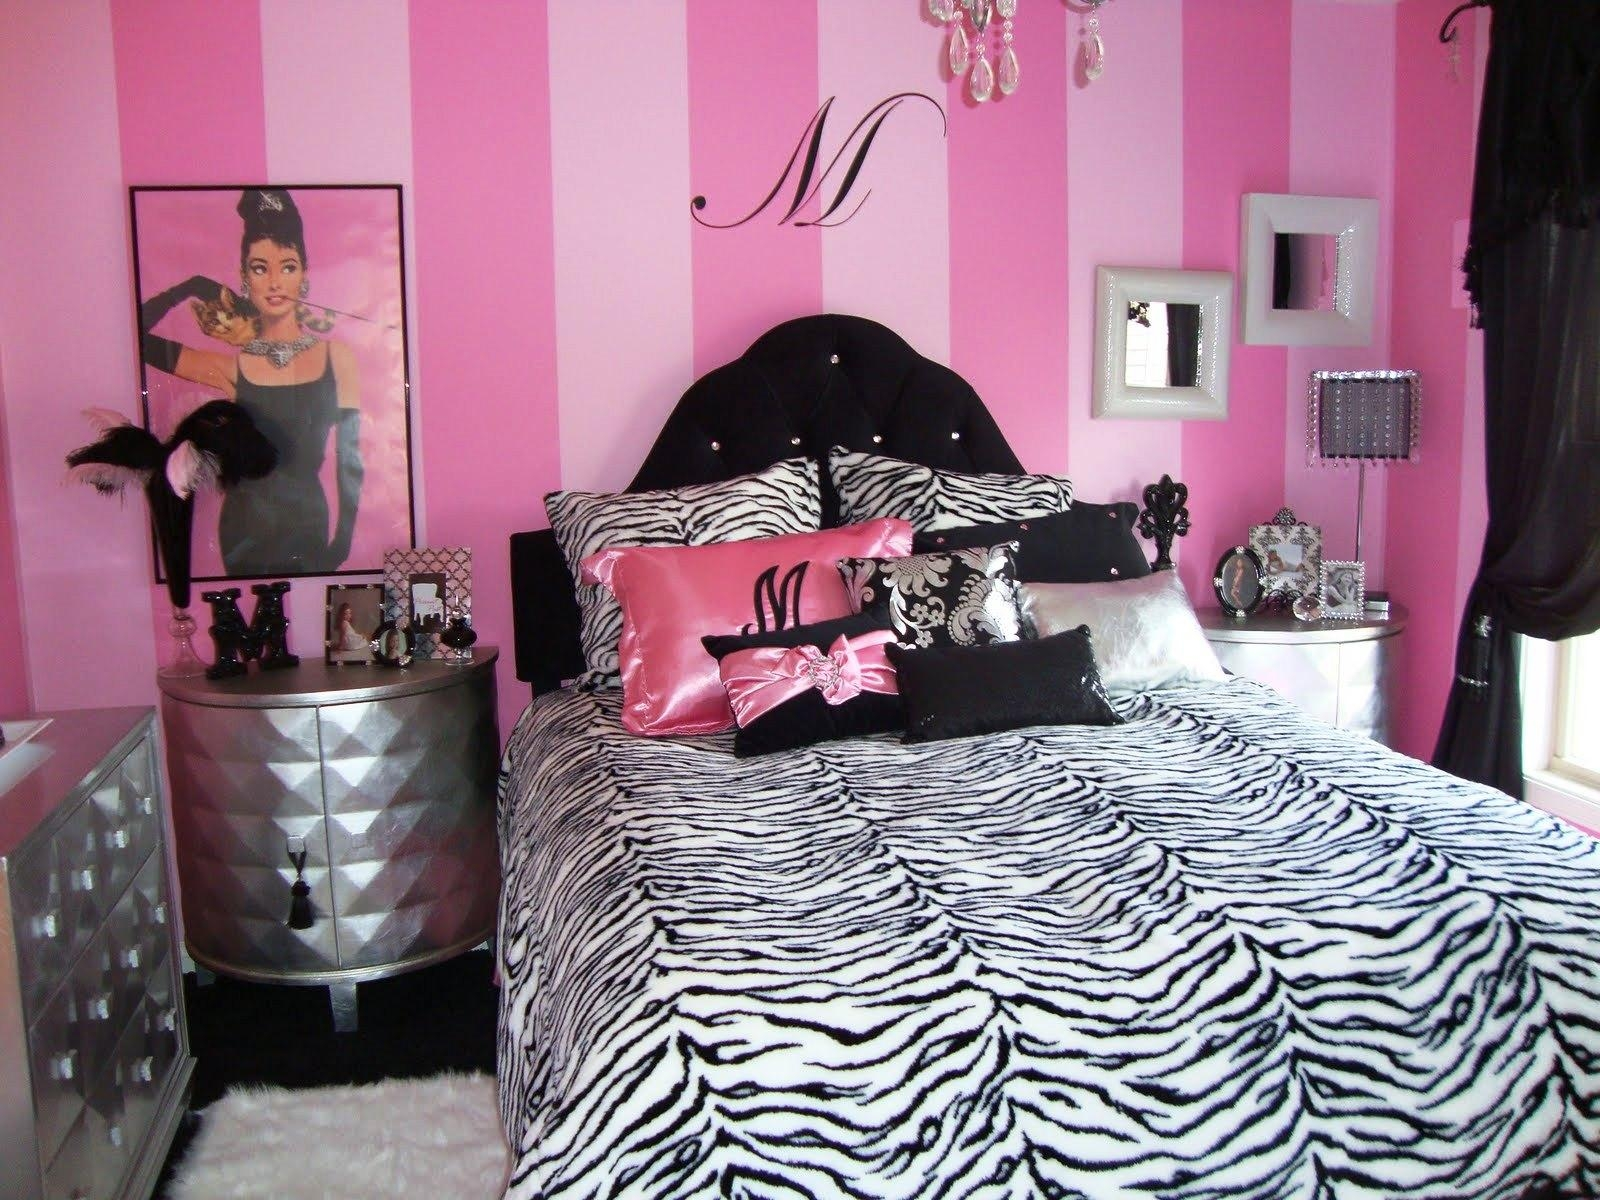 Bedroom : Awesome Bedroom Coolest Room Ideas For Teenage Girls With Kids Sofa Chair And Ottoman Set Zebra (View 4 of 20)